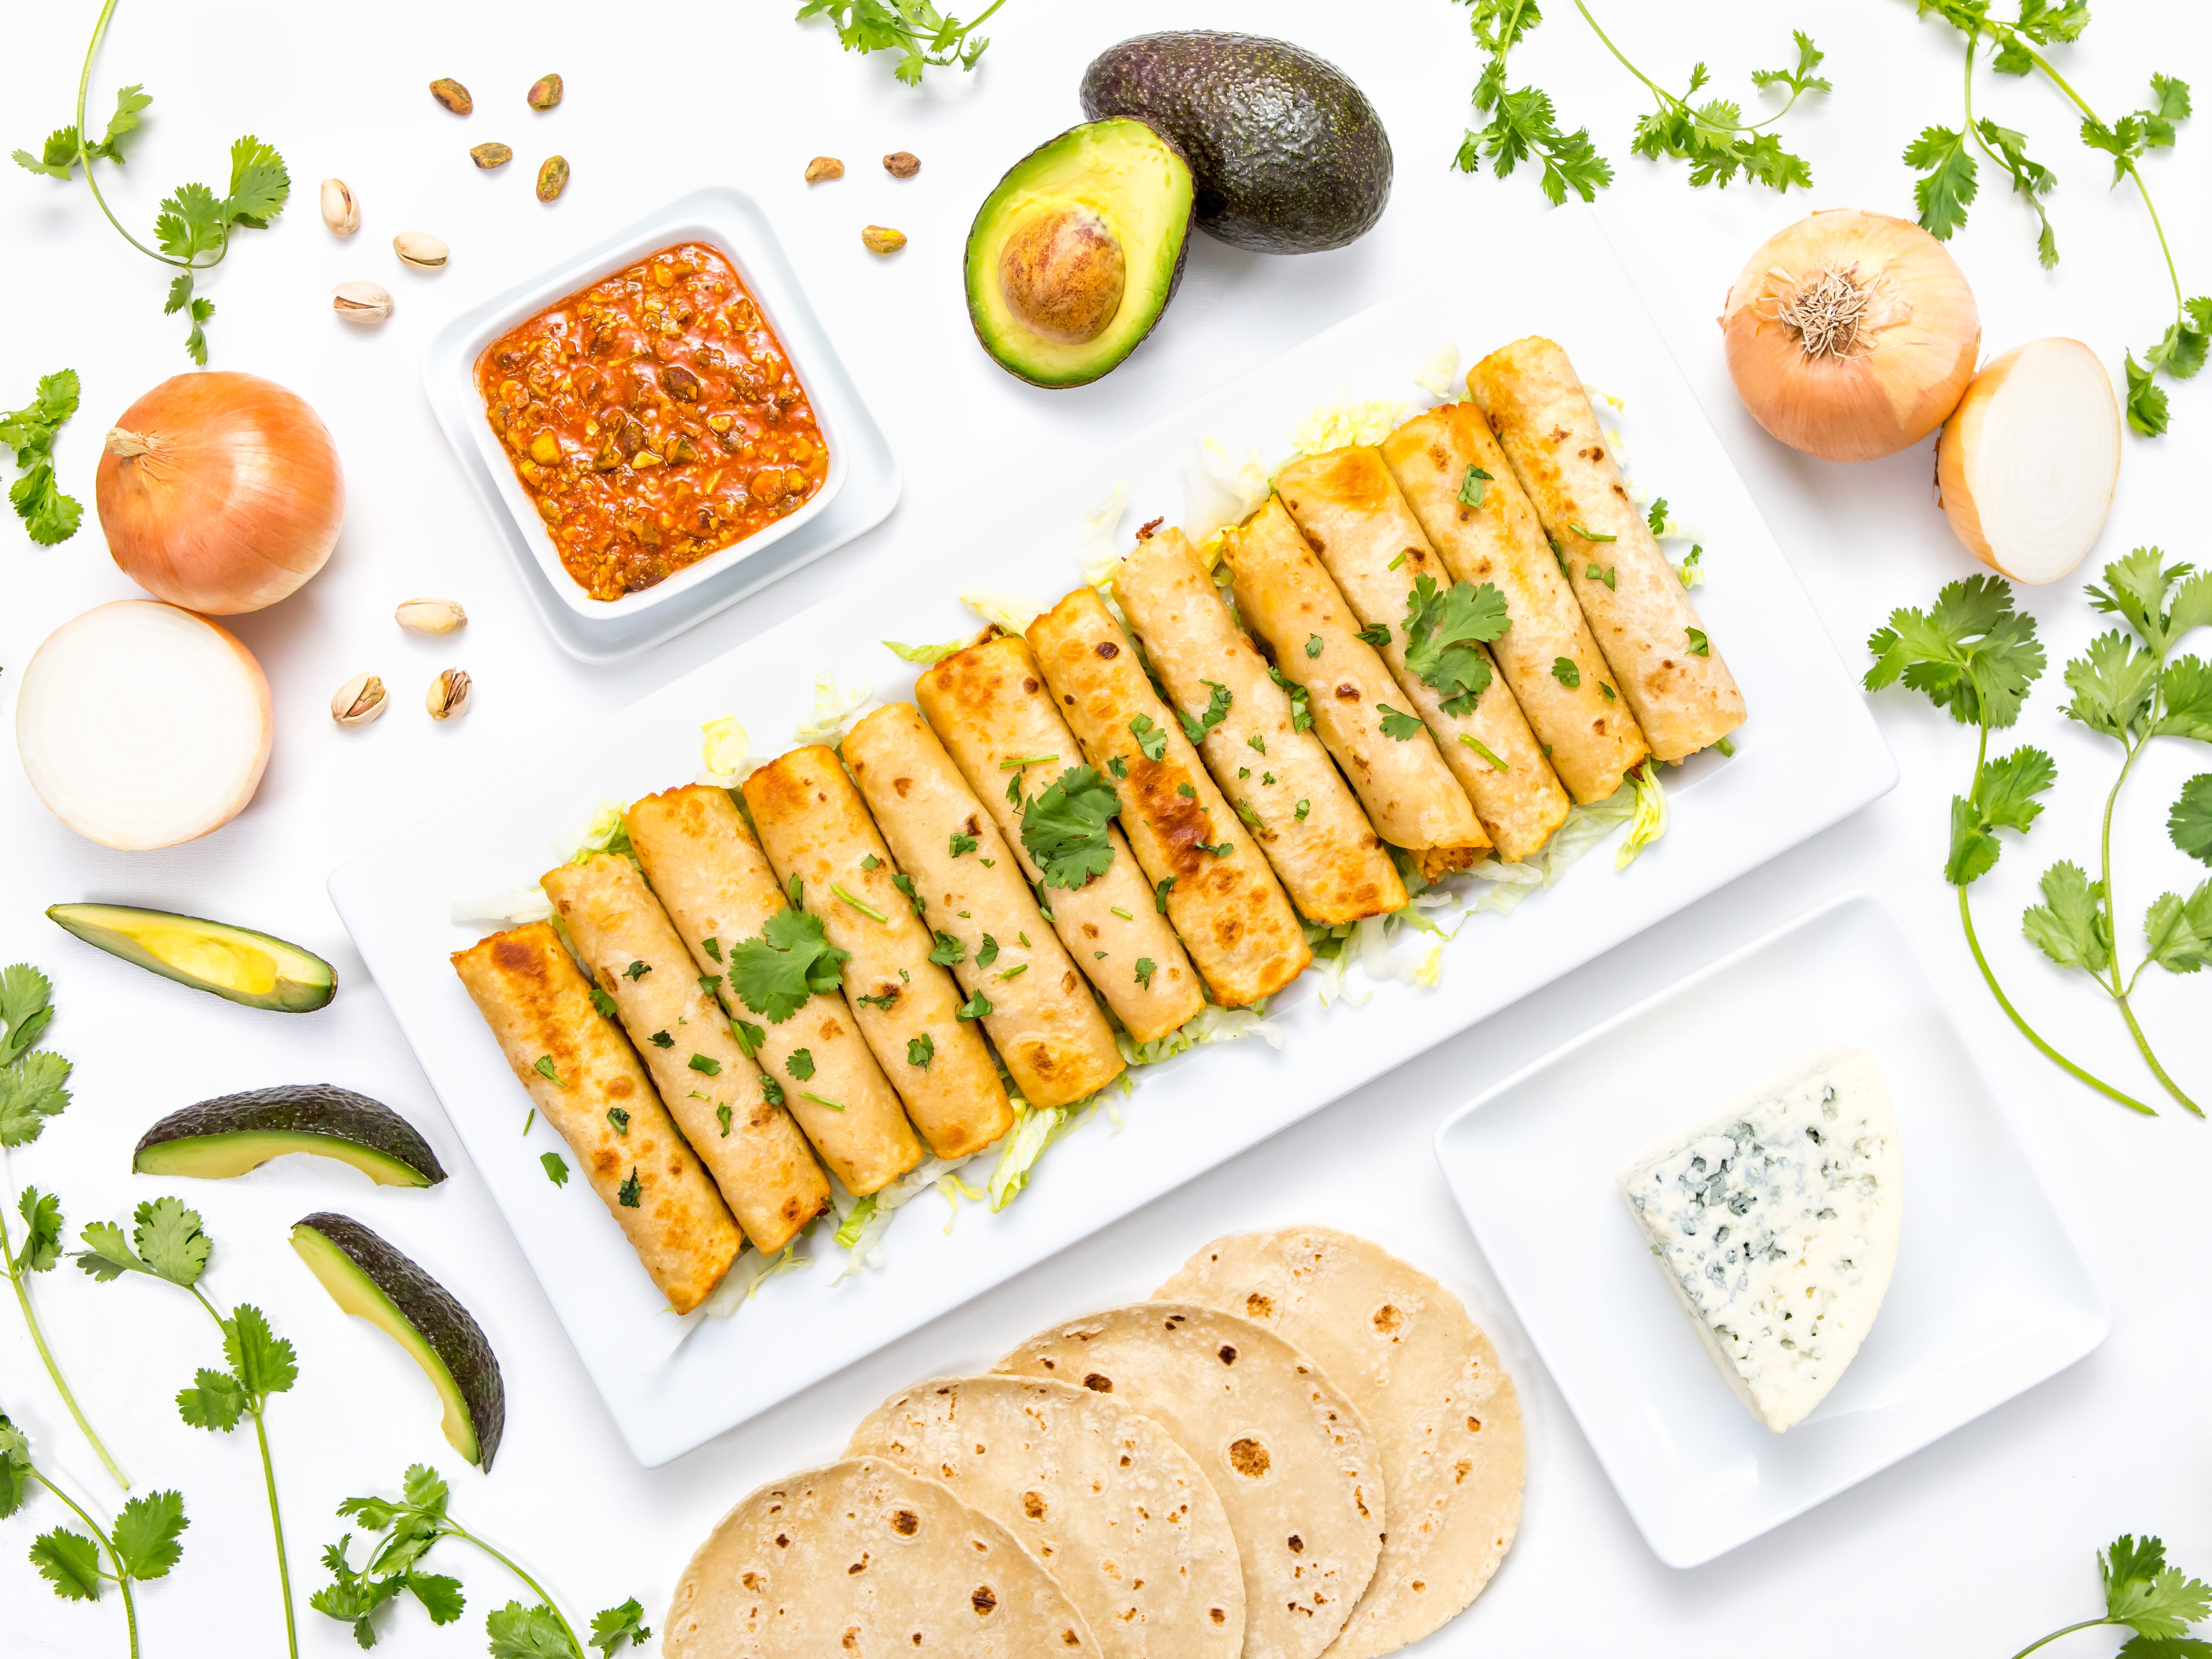 Repurpose that extra turkey with these tasty taquitos. Flavored with Mexican seasoning, the roasted turkey is barely recognizable in these delicious rolled tacos.